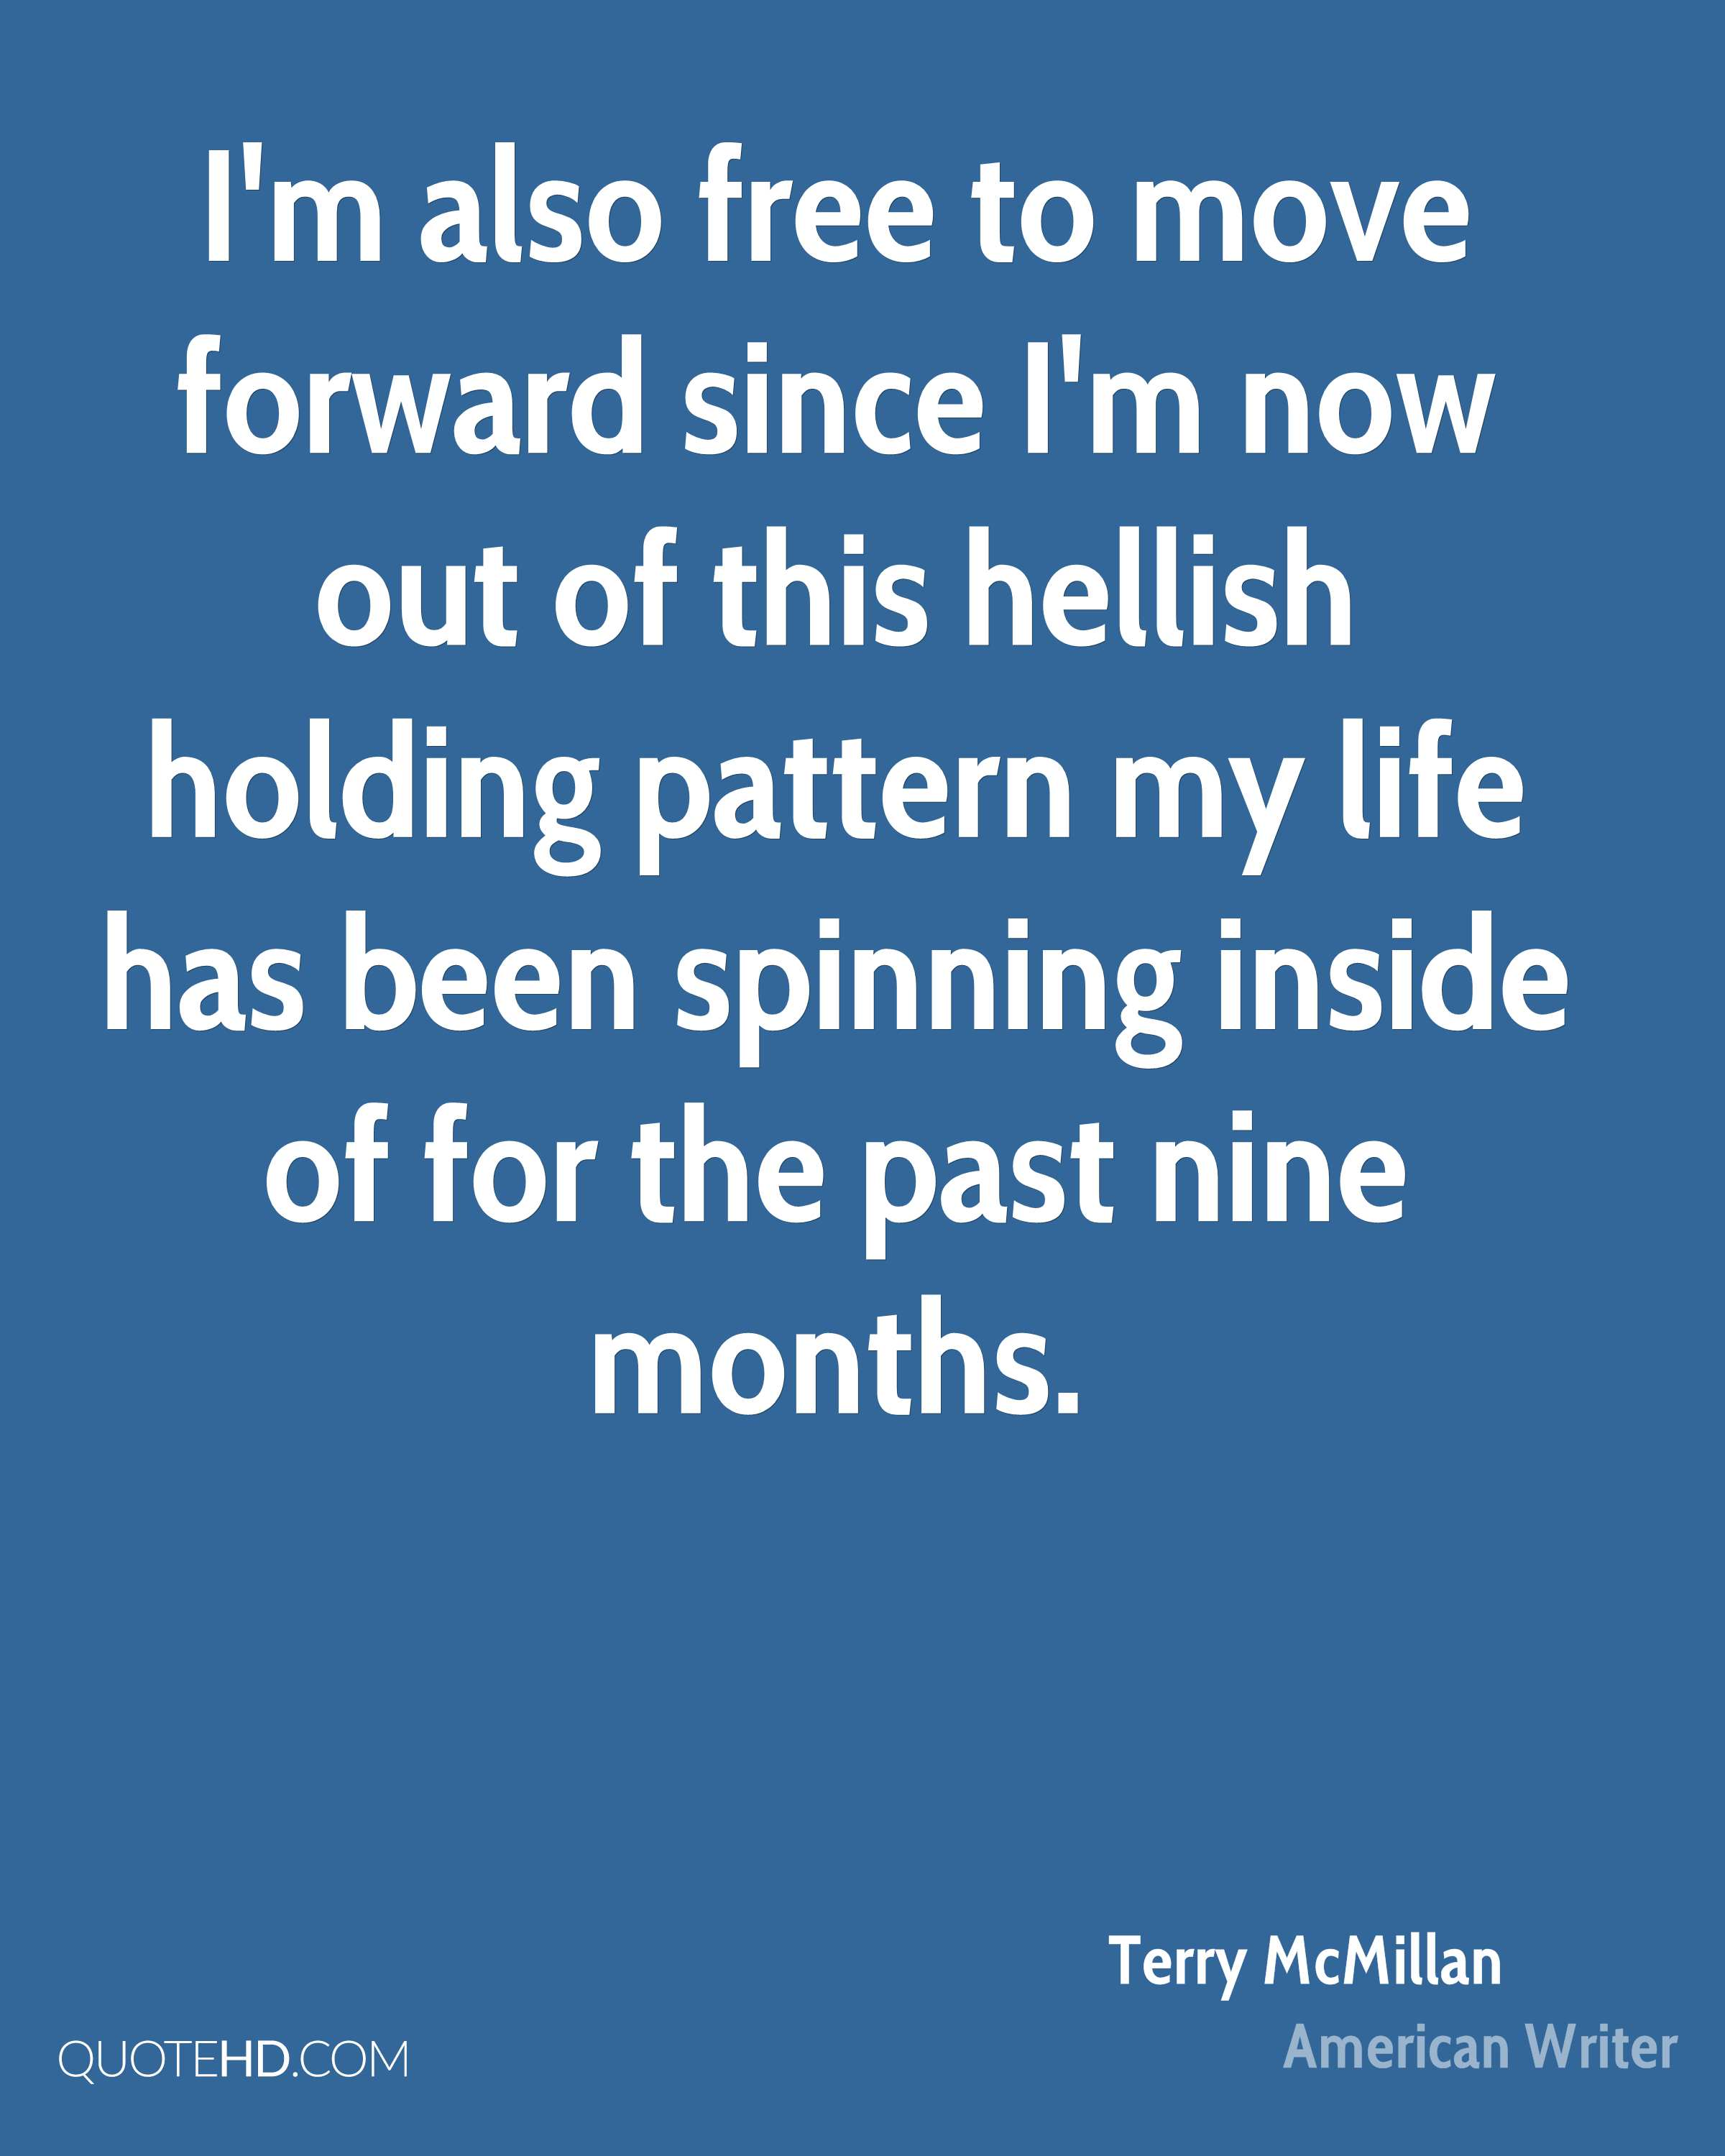 I'm also free to move forward since I'm now out of this hellish holding pattern my life has been spinning inside of for the past nine months.